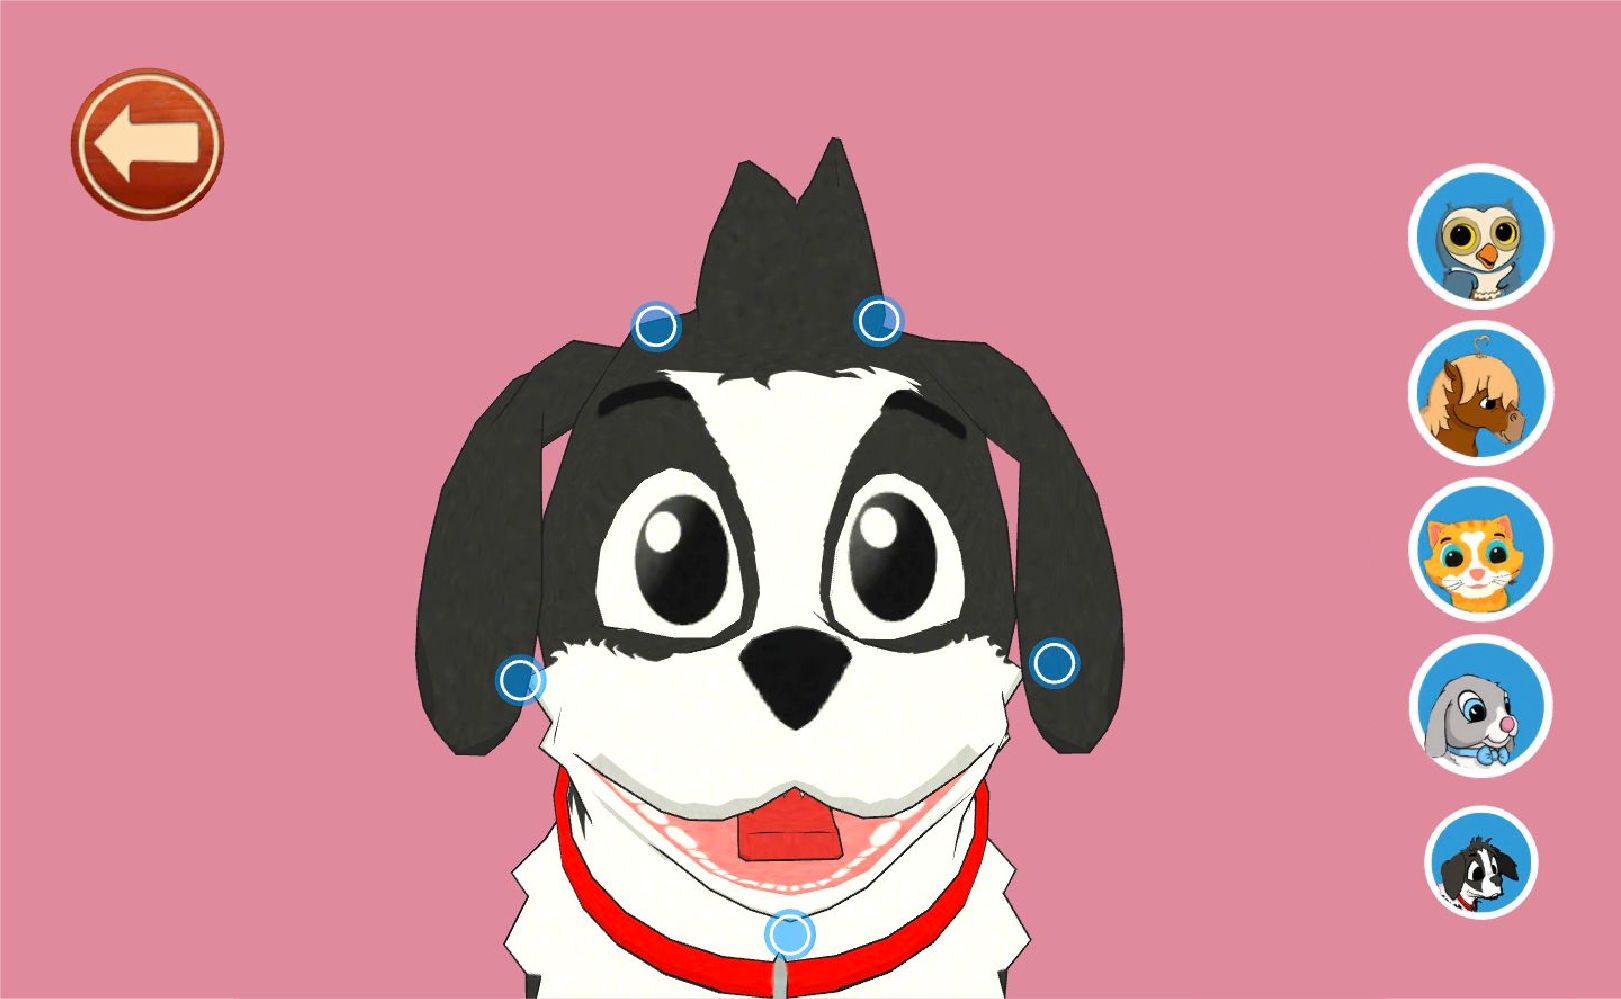 Screenshot from Peppy Pals app showing a dog